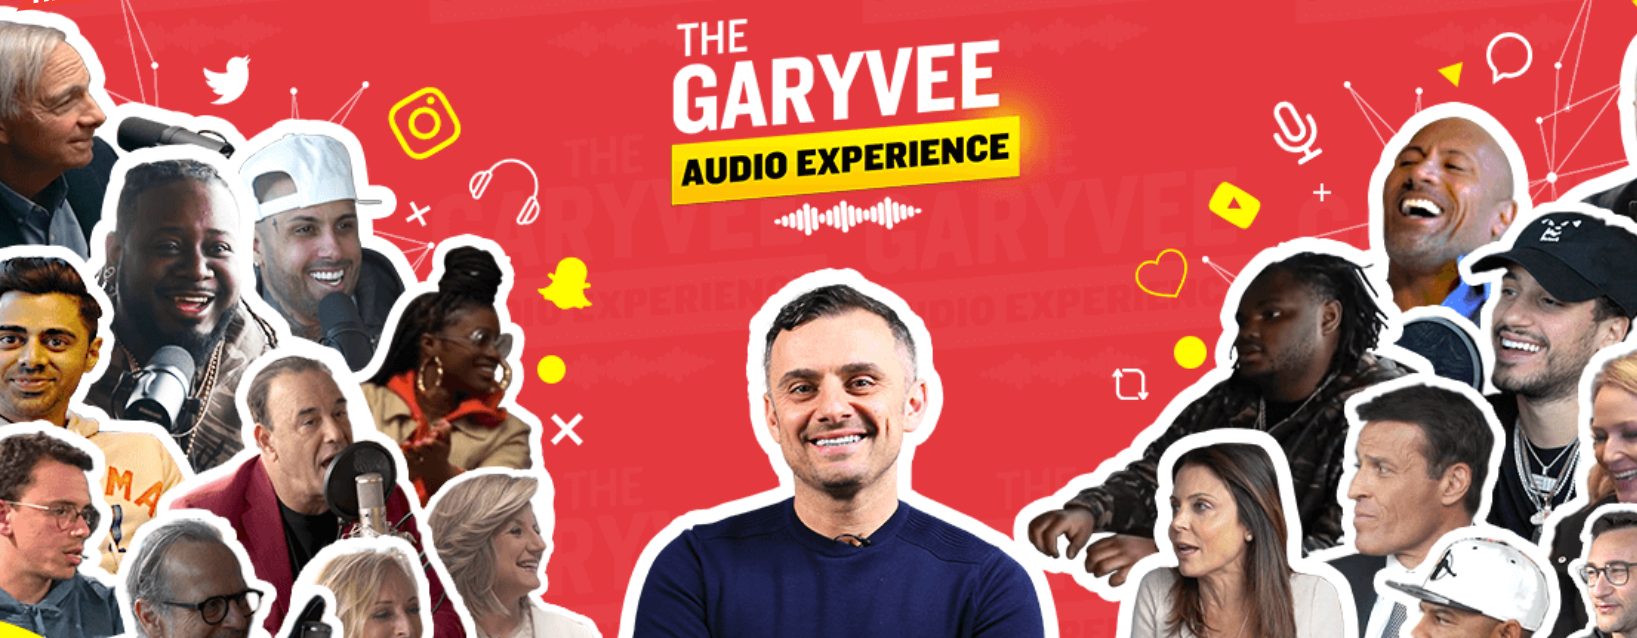 Garyvee audio experience podcast for learning social media marketing